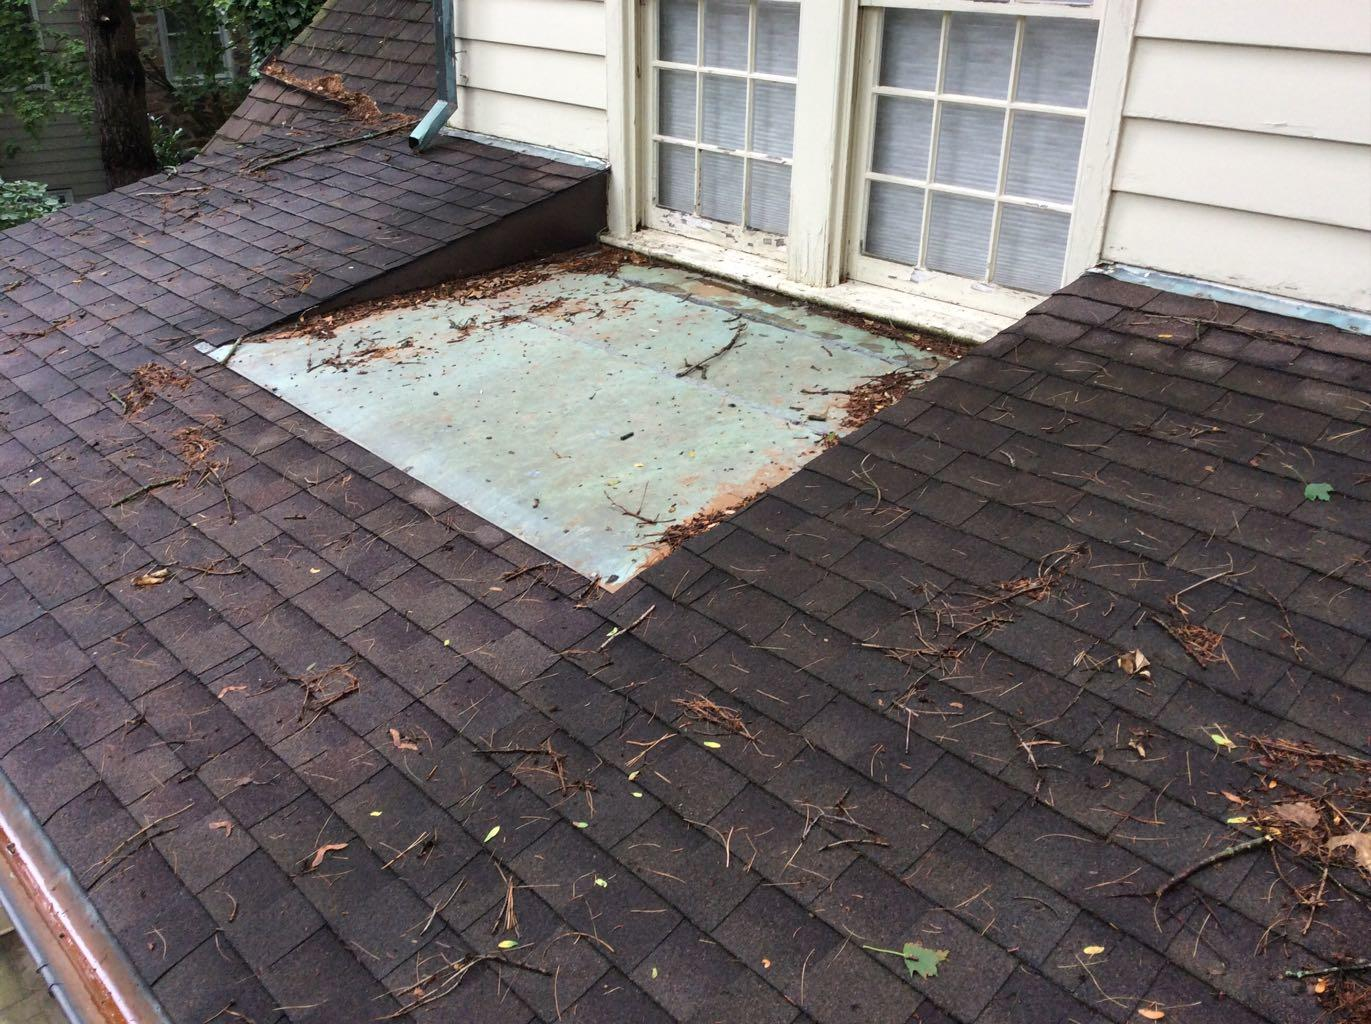 Bryn Mawr - Certainteed Landmark Shingles and Copper Standing Seam Roof - Before Photo